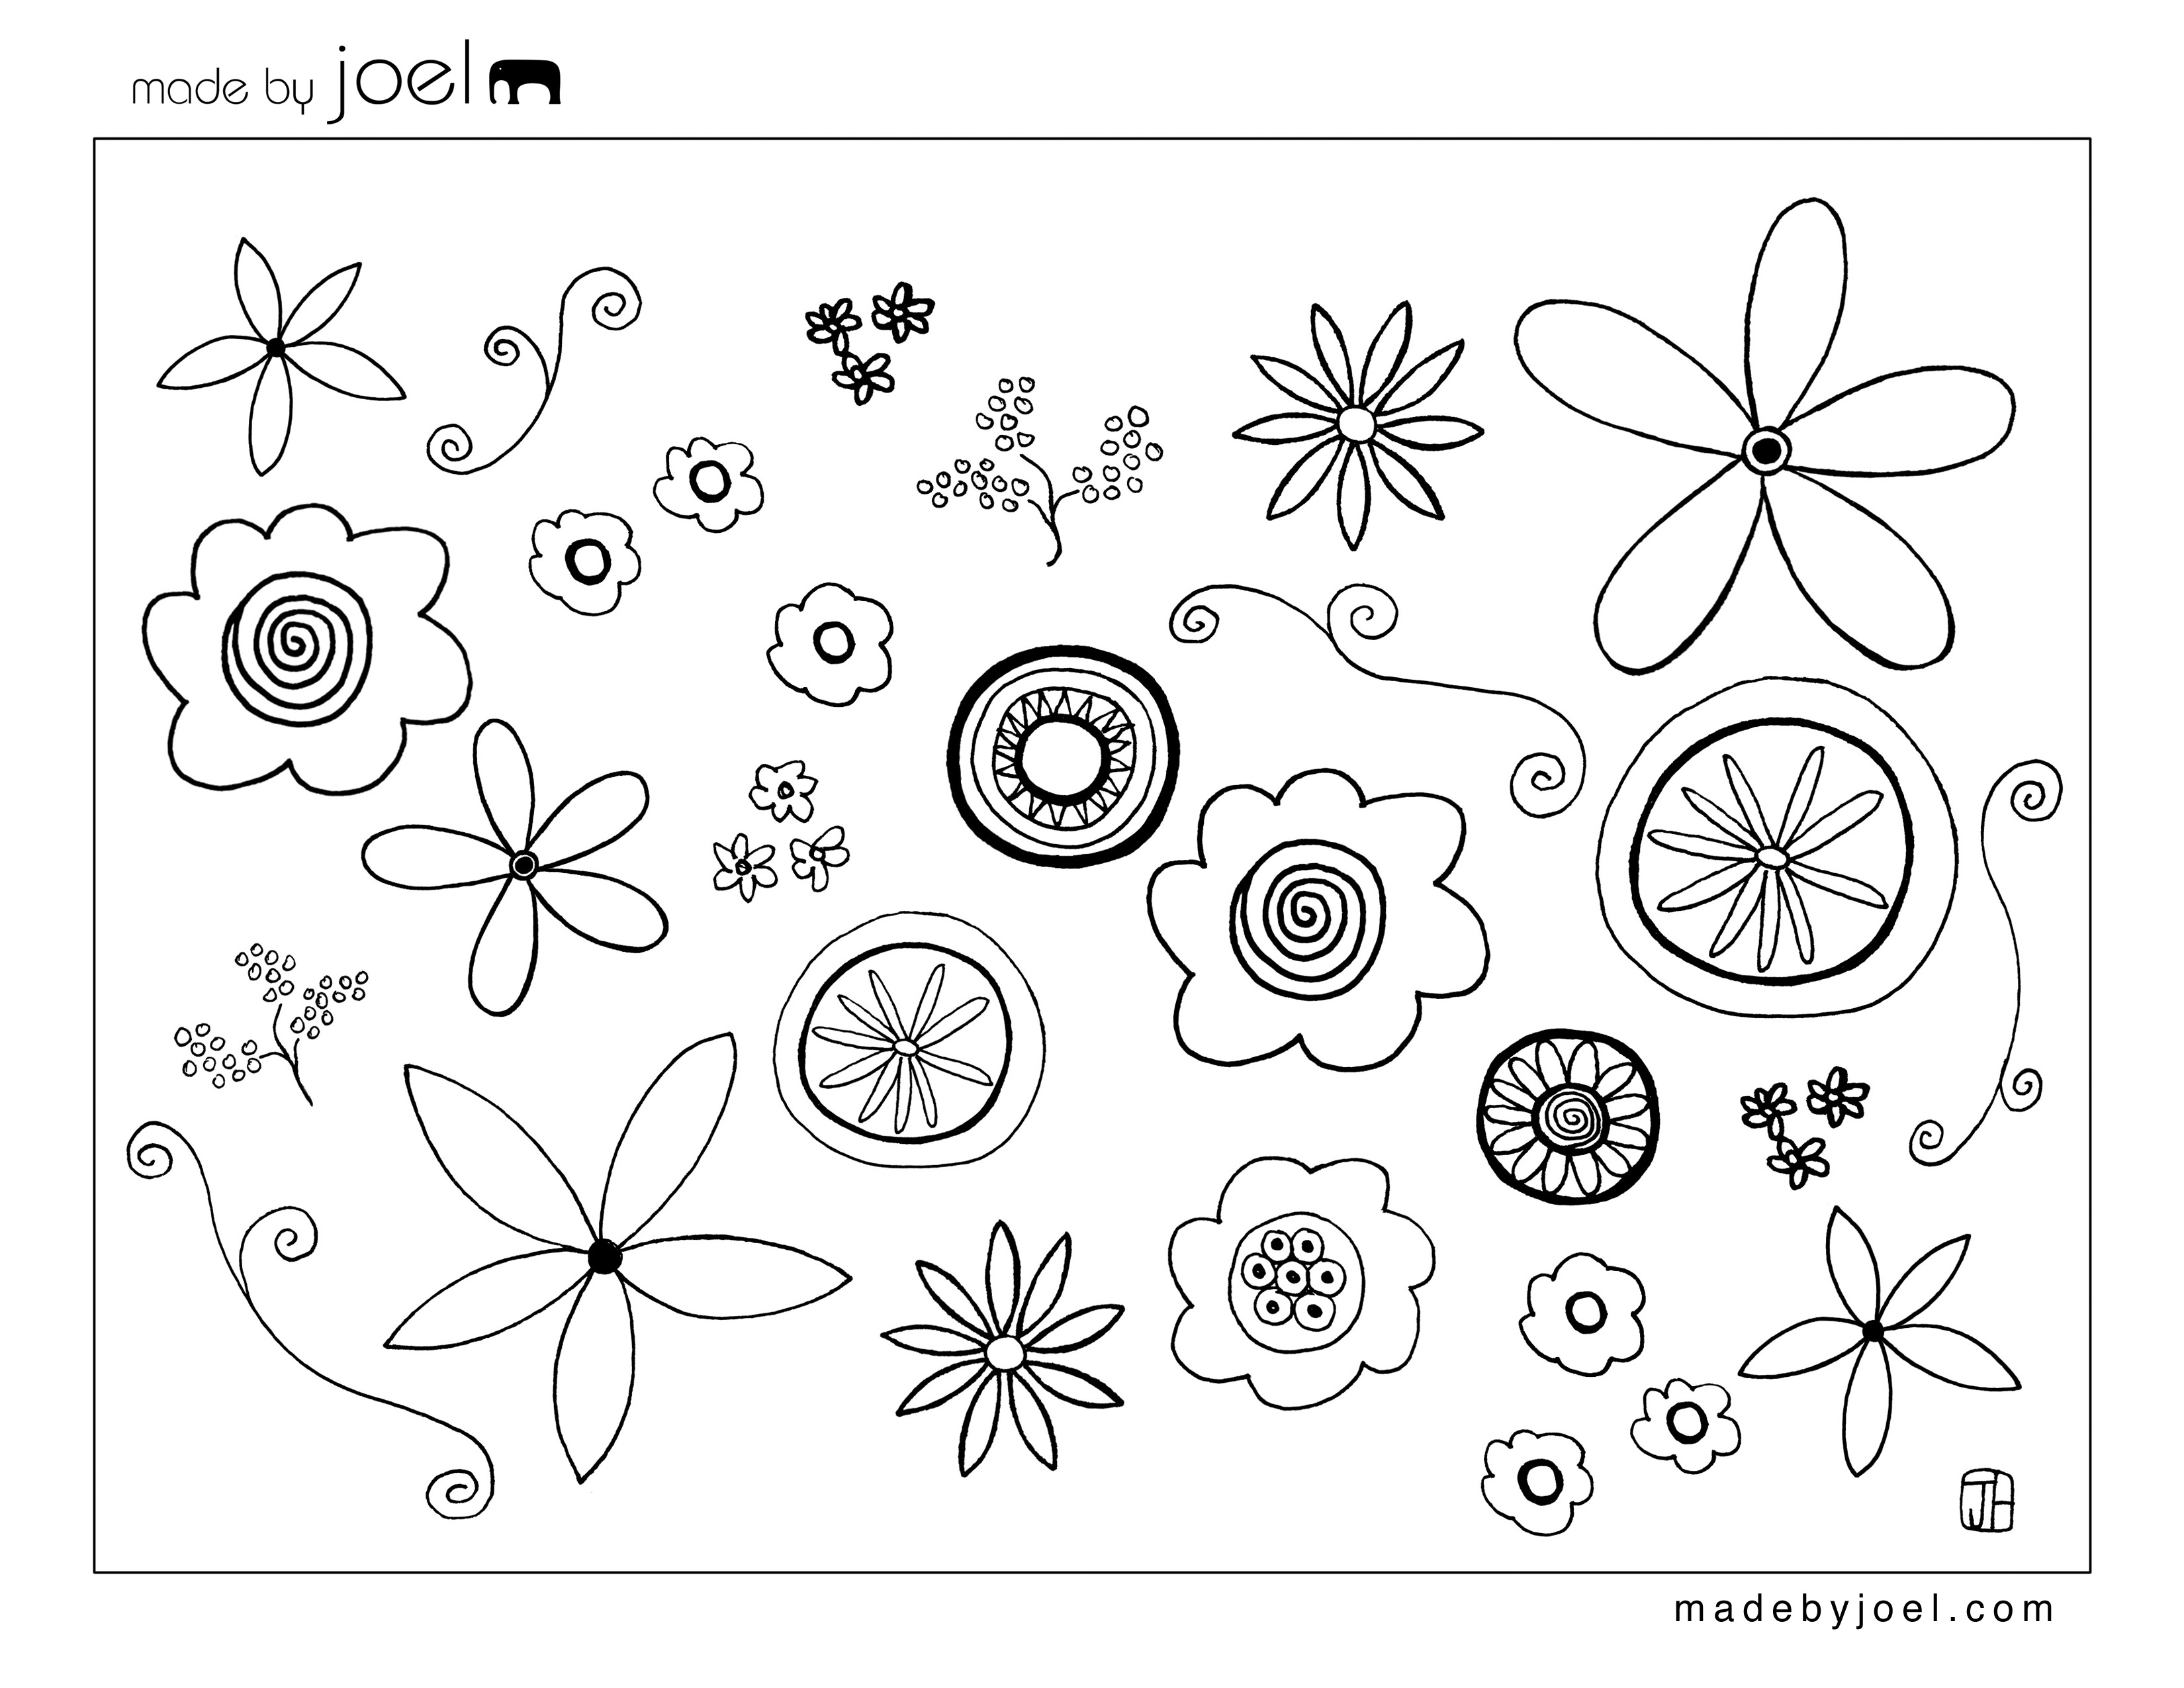 Free printable images of flowers image freeuse download Good Free Printable Flower Coloring Pages Coloring Pages Free ... image freeuse download